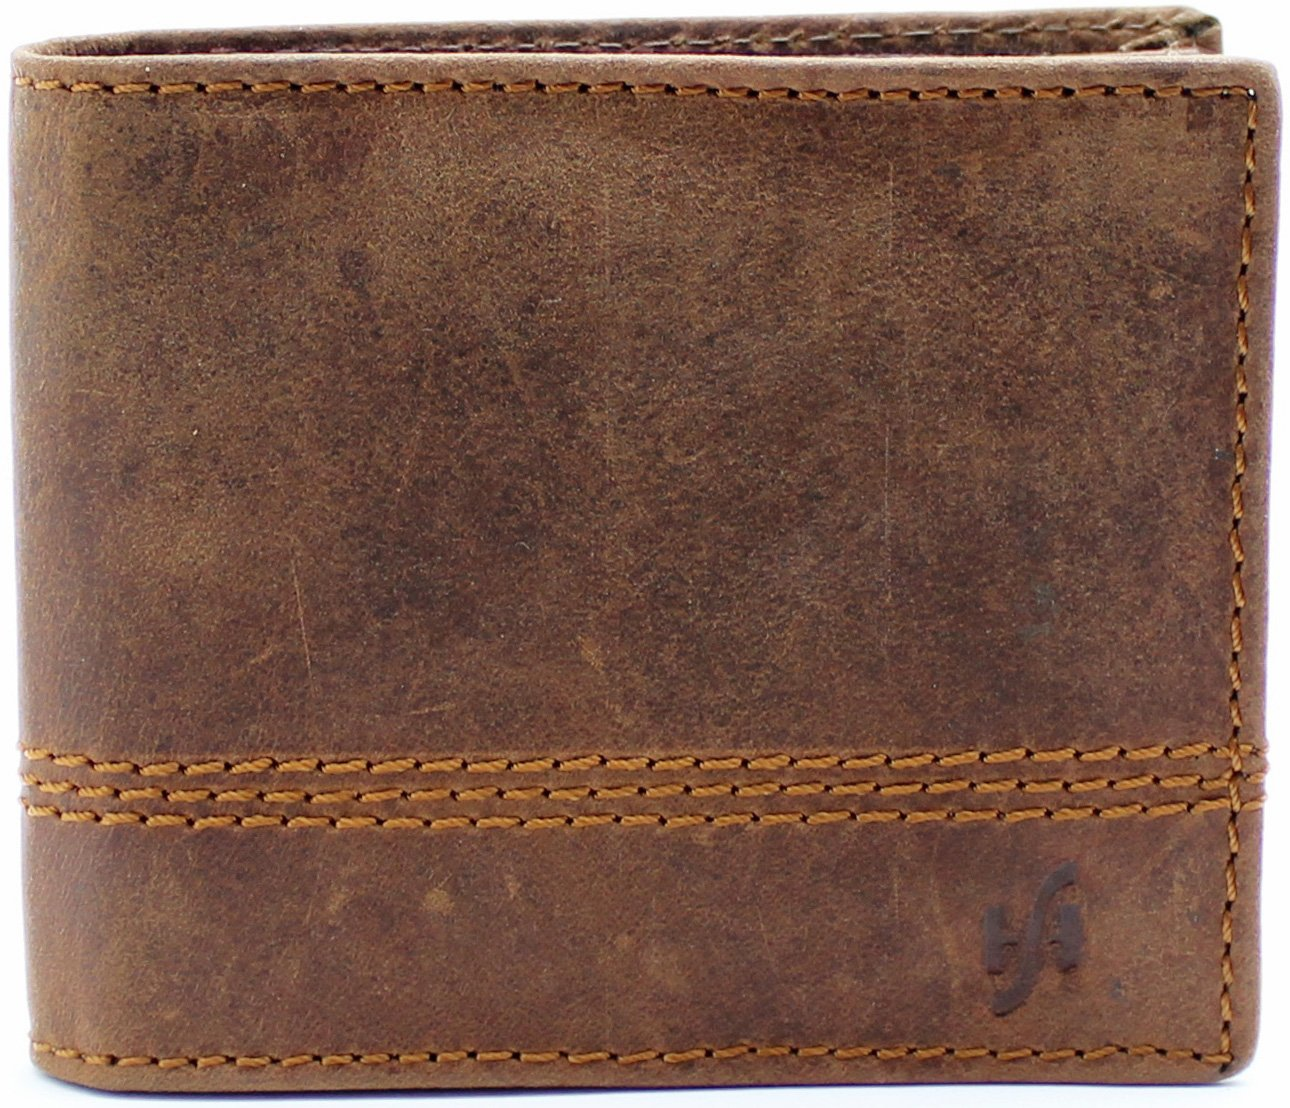 StarHide RFID Blocking Wallet Mens Designed For ID, Credit Cards, Cash - 1150